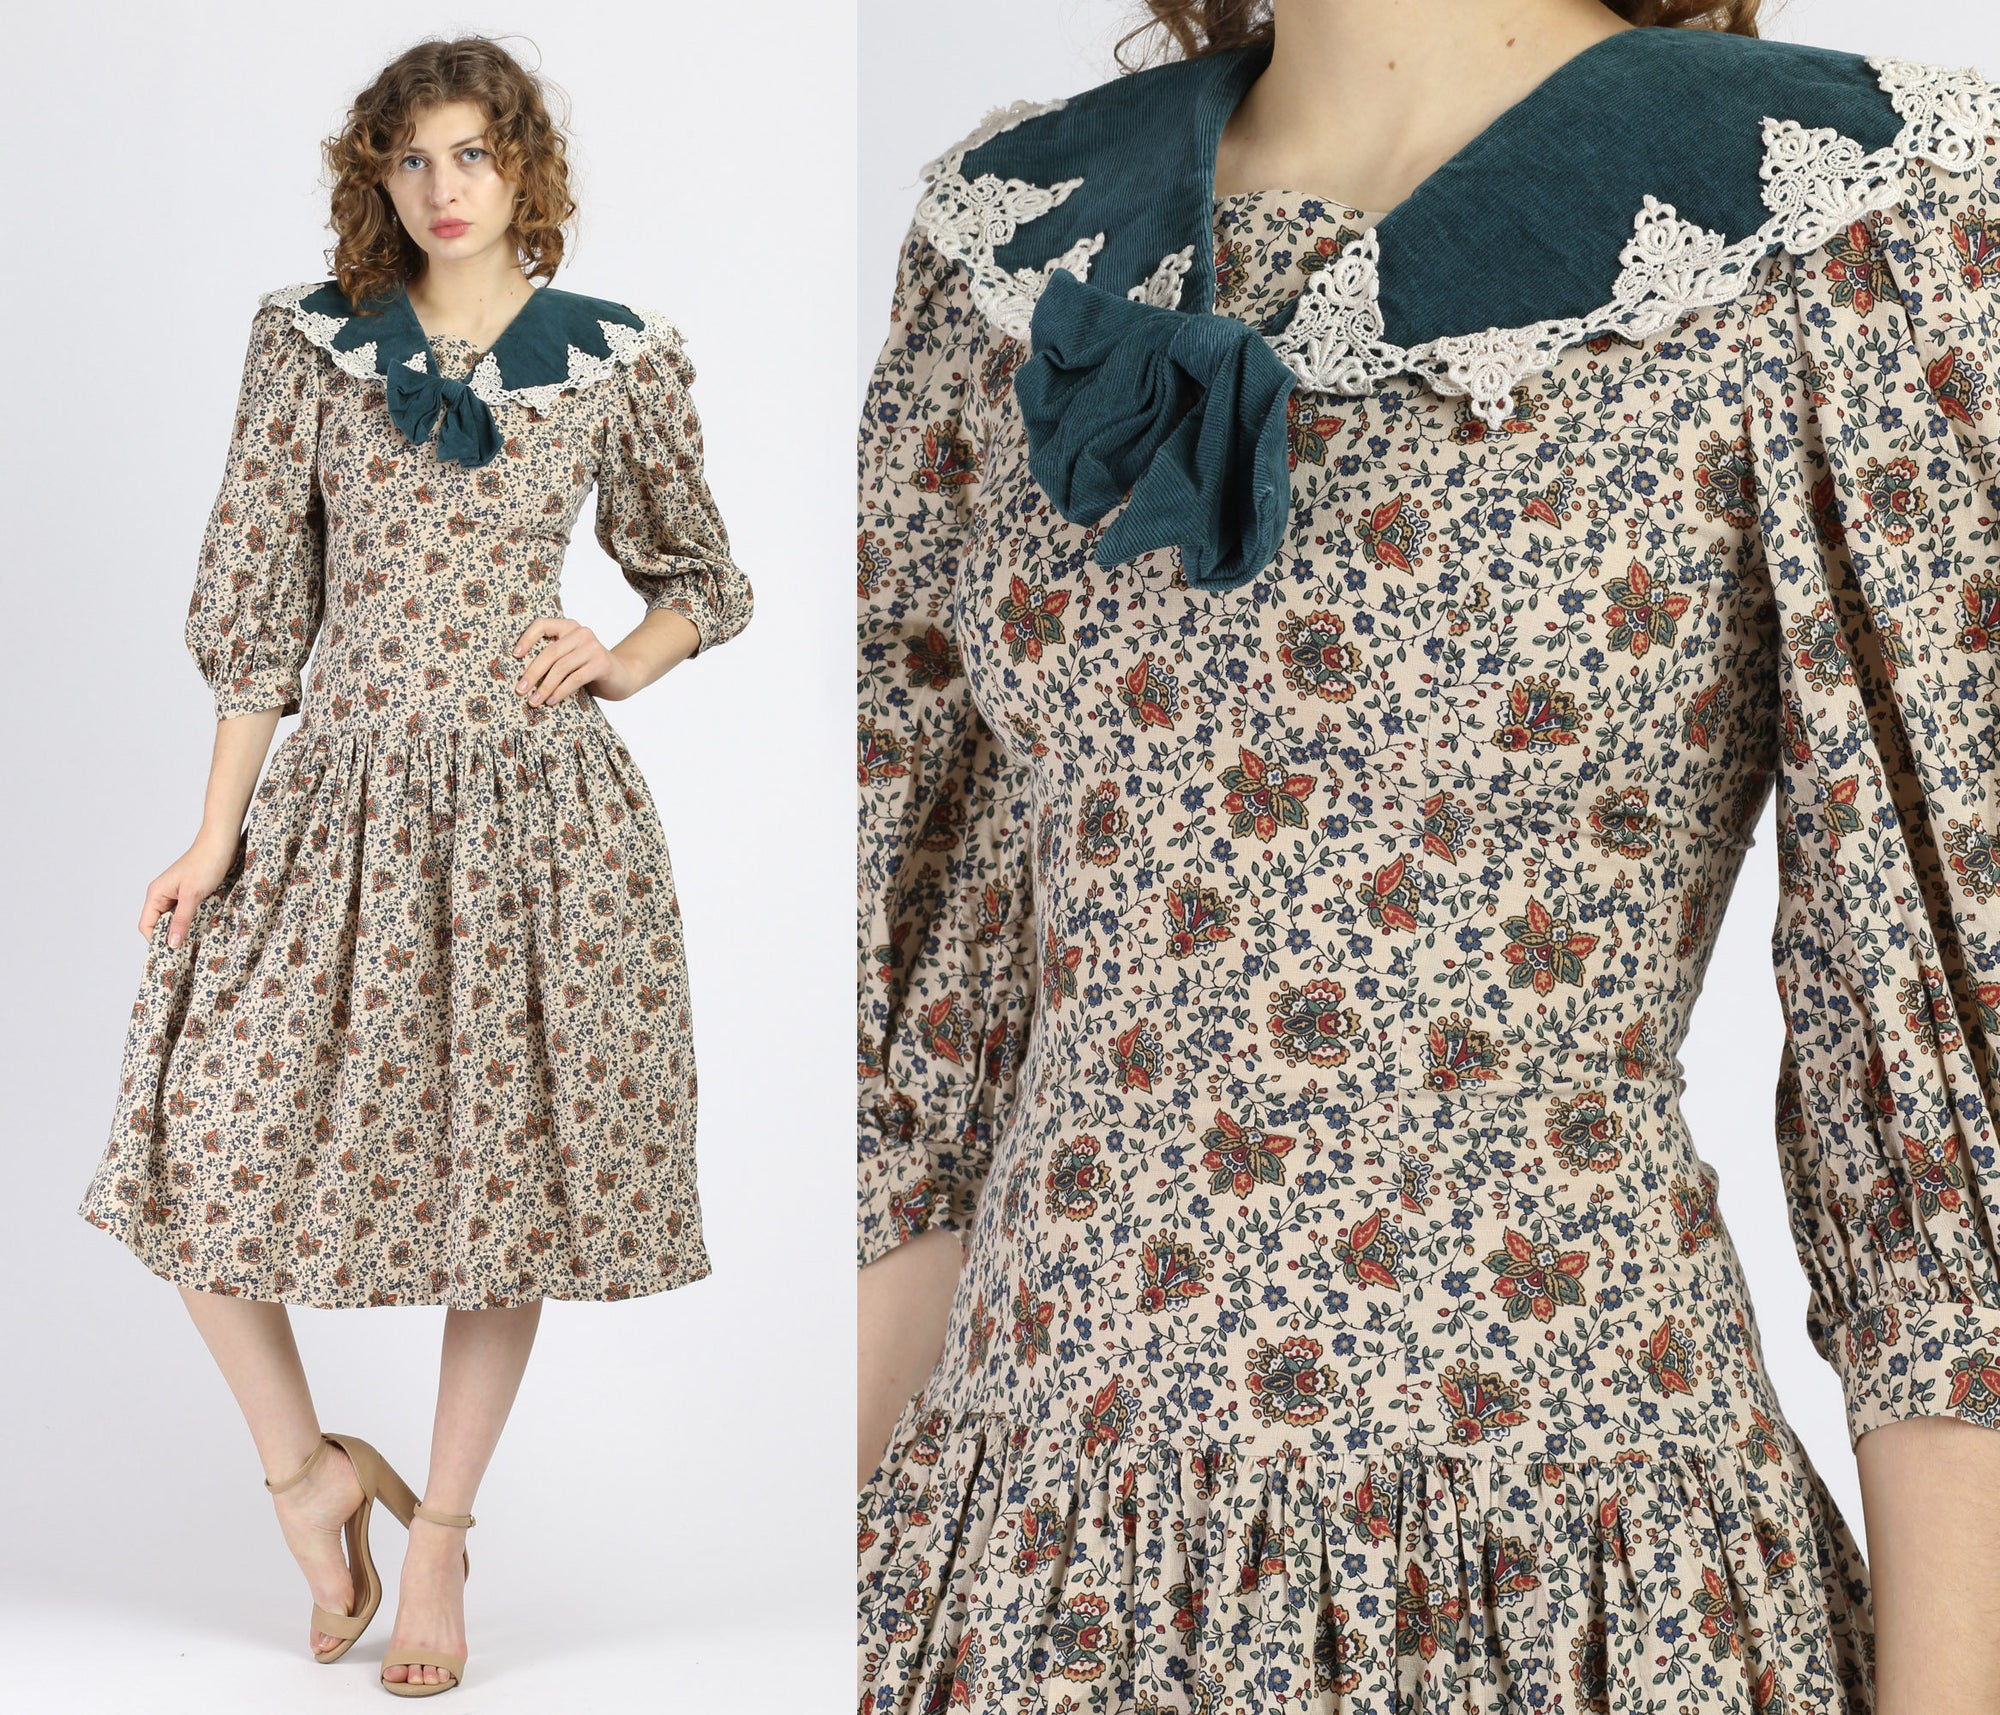 80s Corduroy & Lace Collar Floral Midi Dress - Small